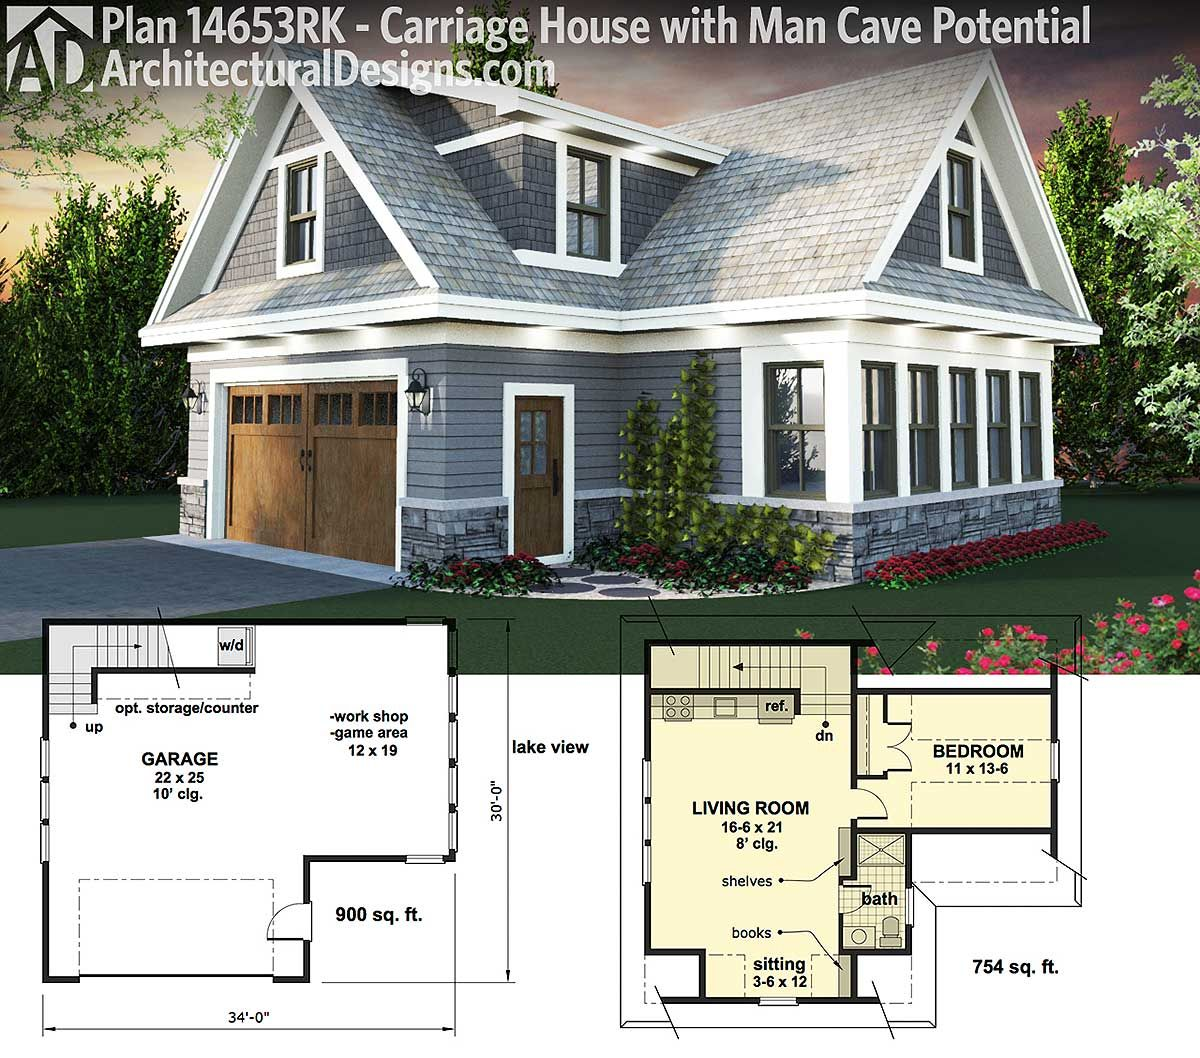 Plan 14653rk carriage house plan with man cave potential for 2 5 car garage cost